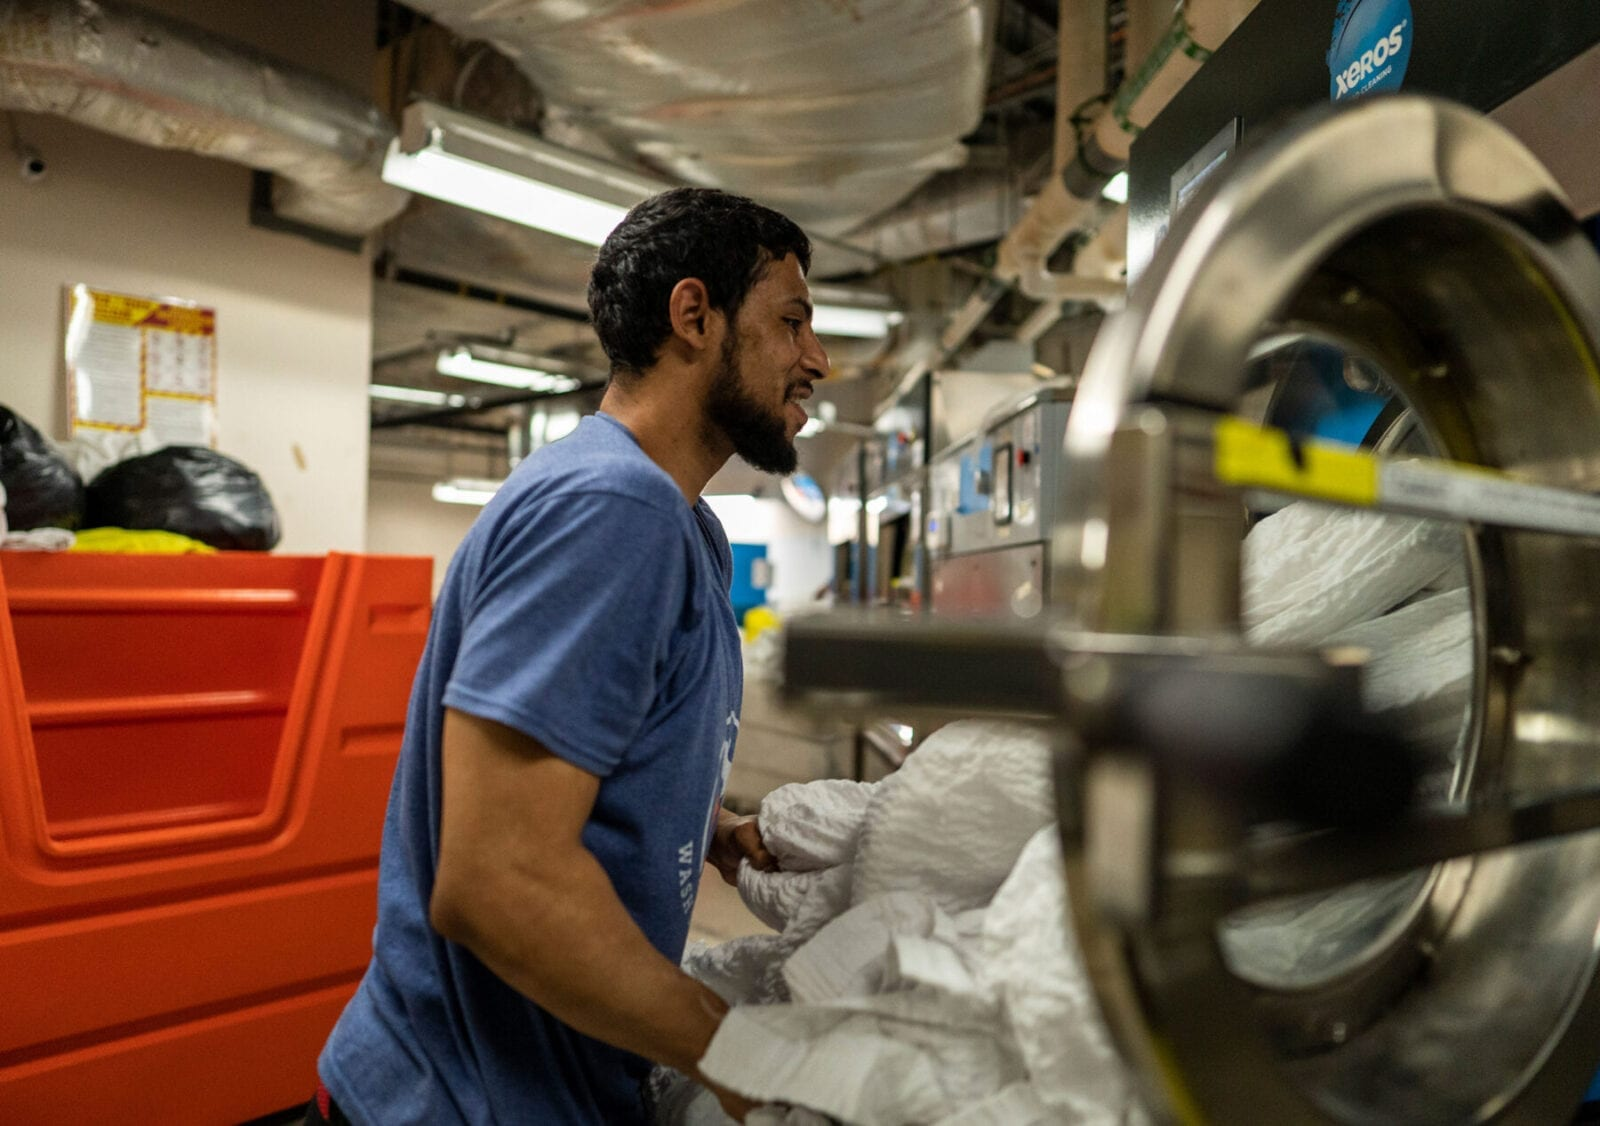 Postindustrial, Louie Colon works at Wash Cycle Laundry in Philadelphia. Photo by Jessica Kourkounis